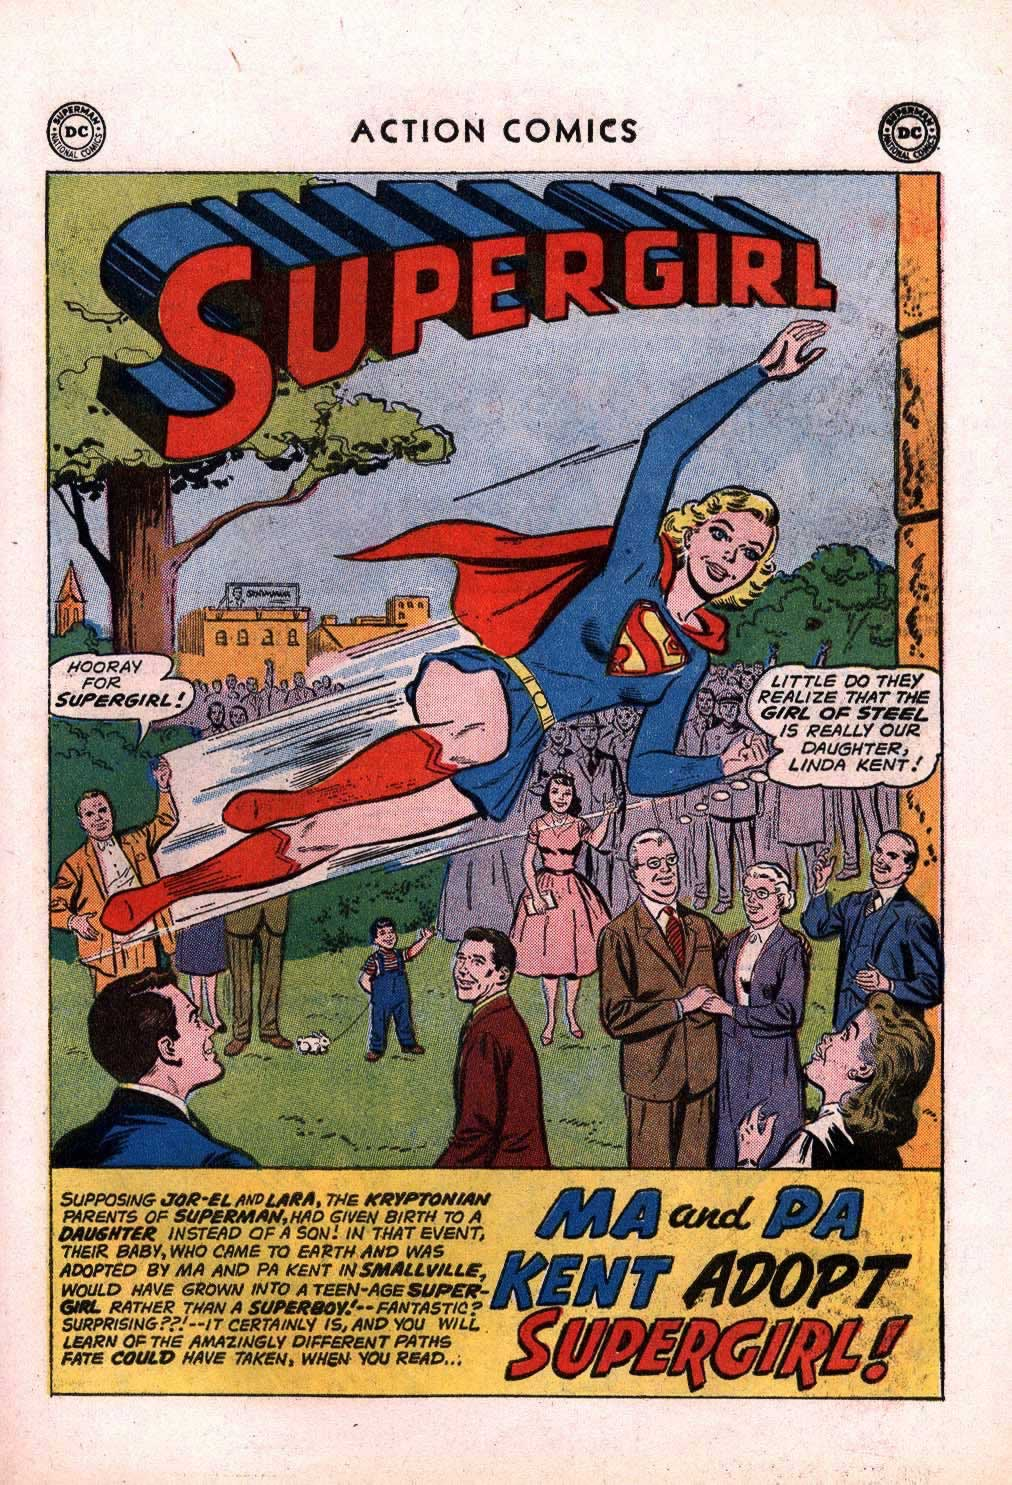 Ma and Pa Kent Adopt Supergirl!